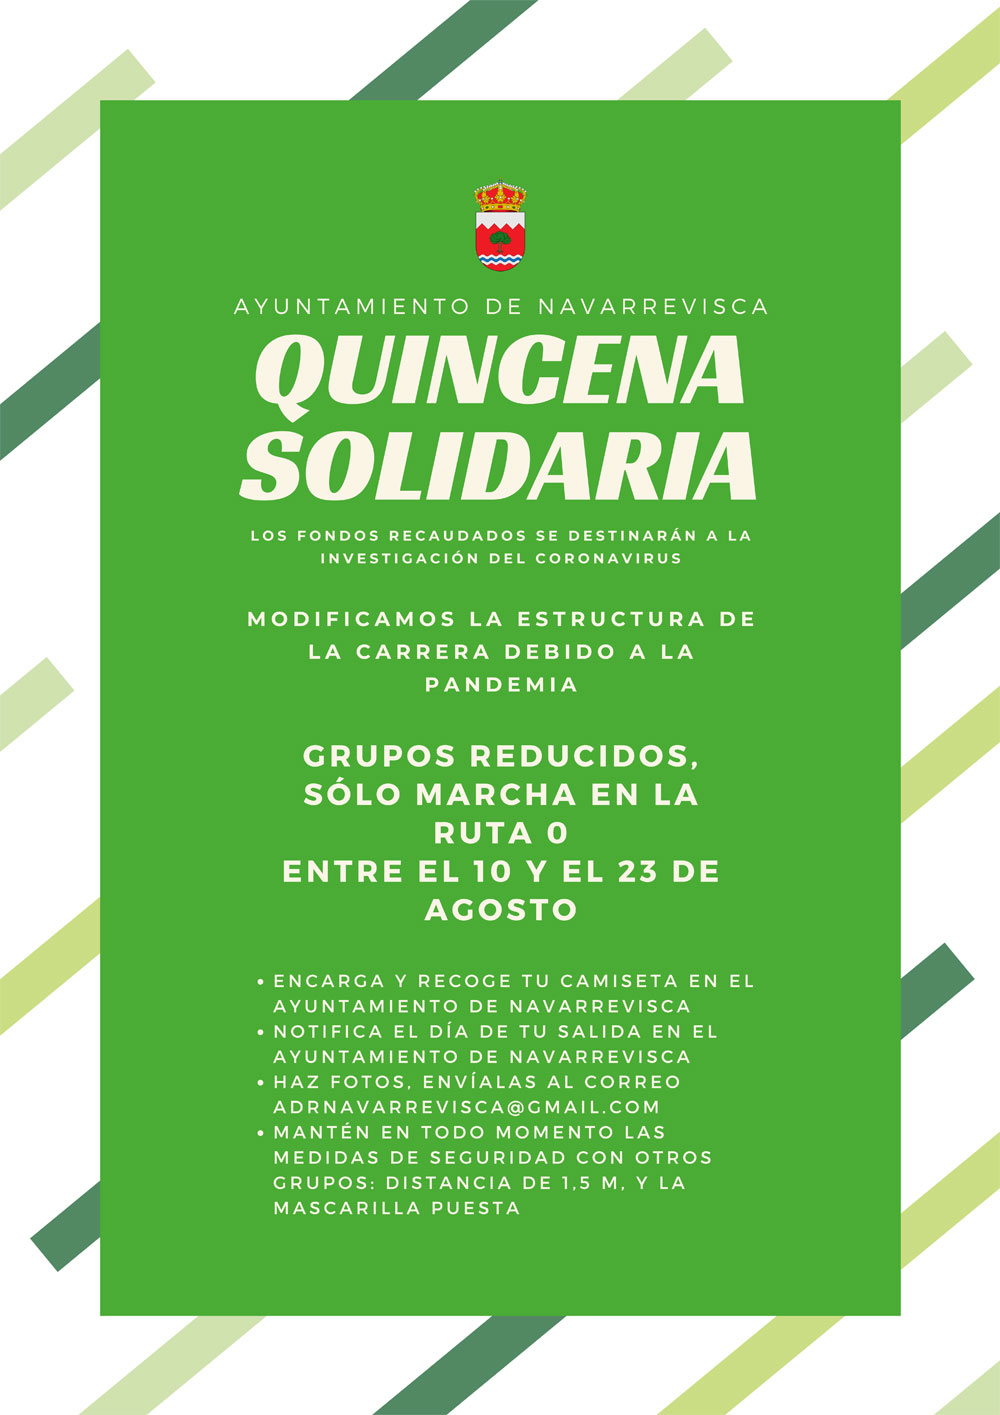 Quincena solidaria 2020